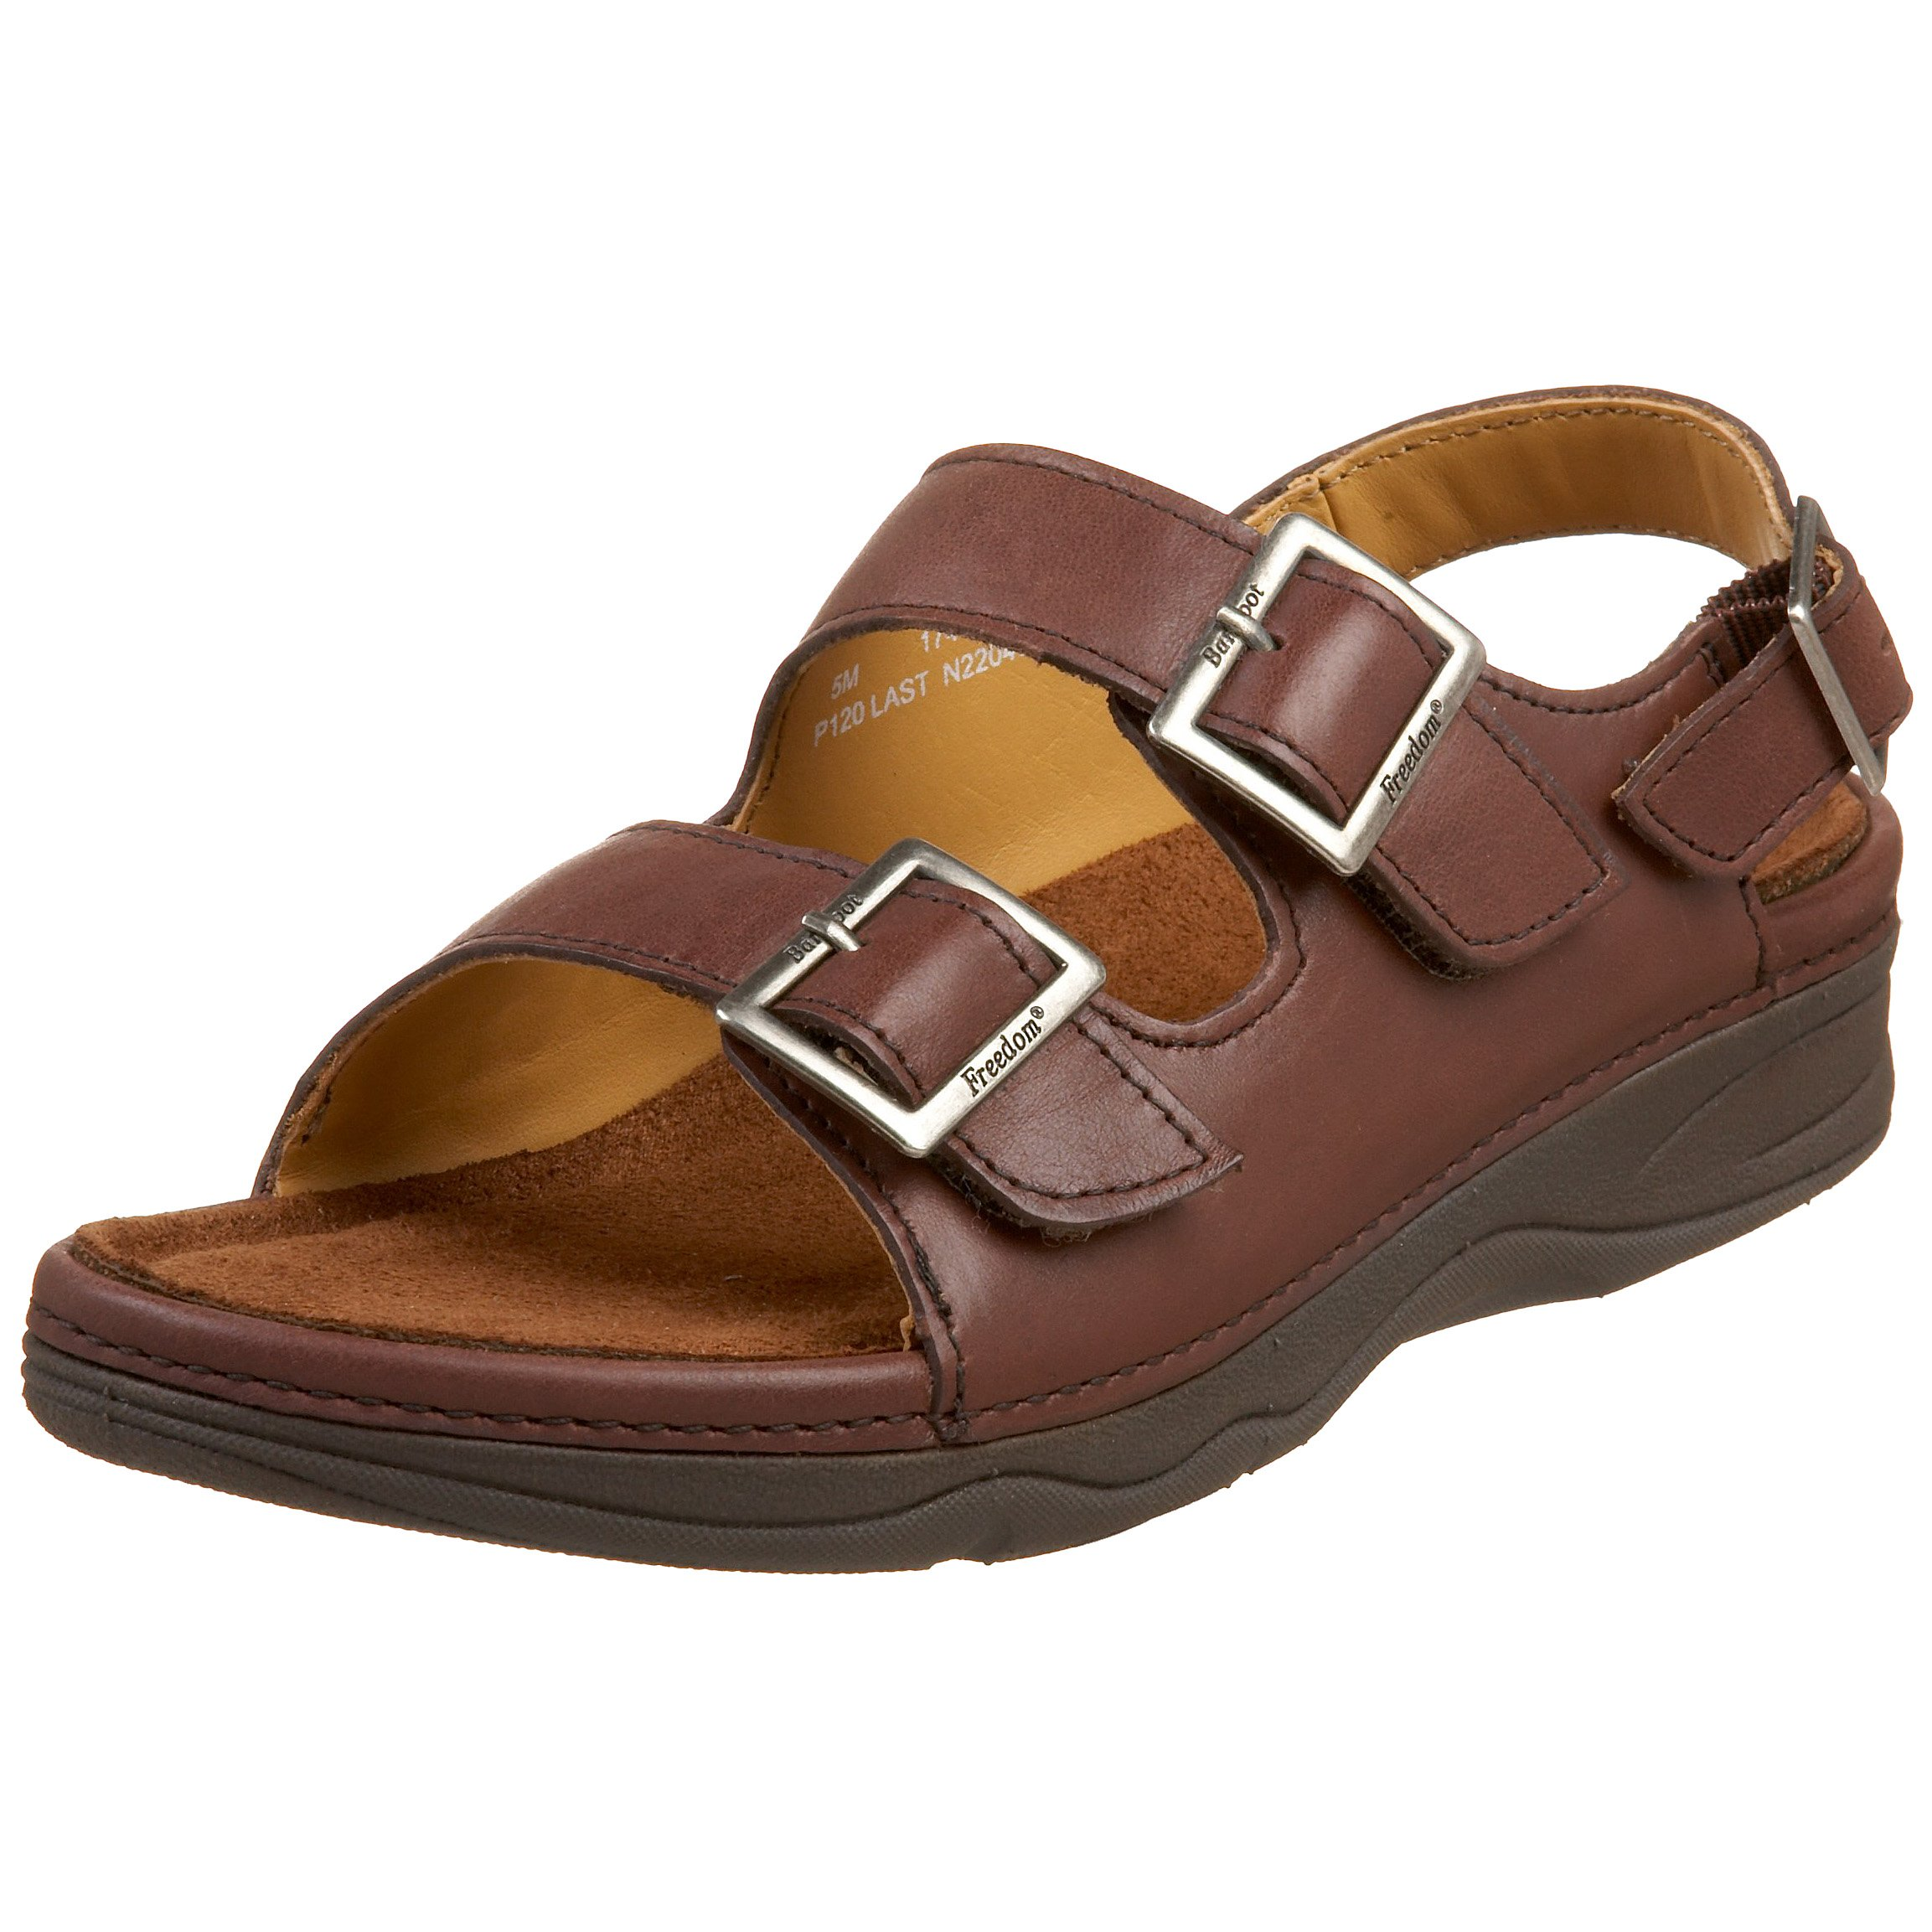 Drew Shoe Women's Sahara Sandal,Brown,11.5 WW US